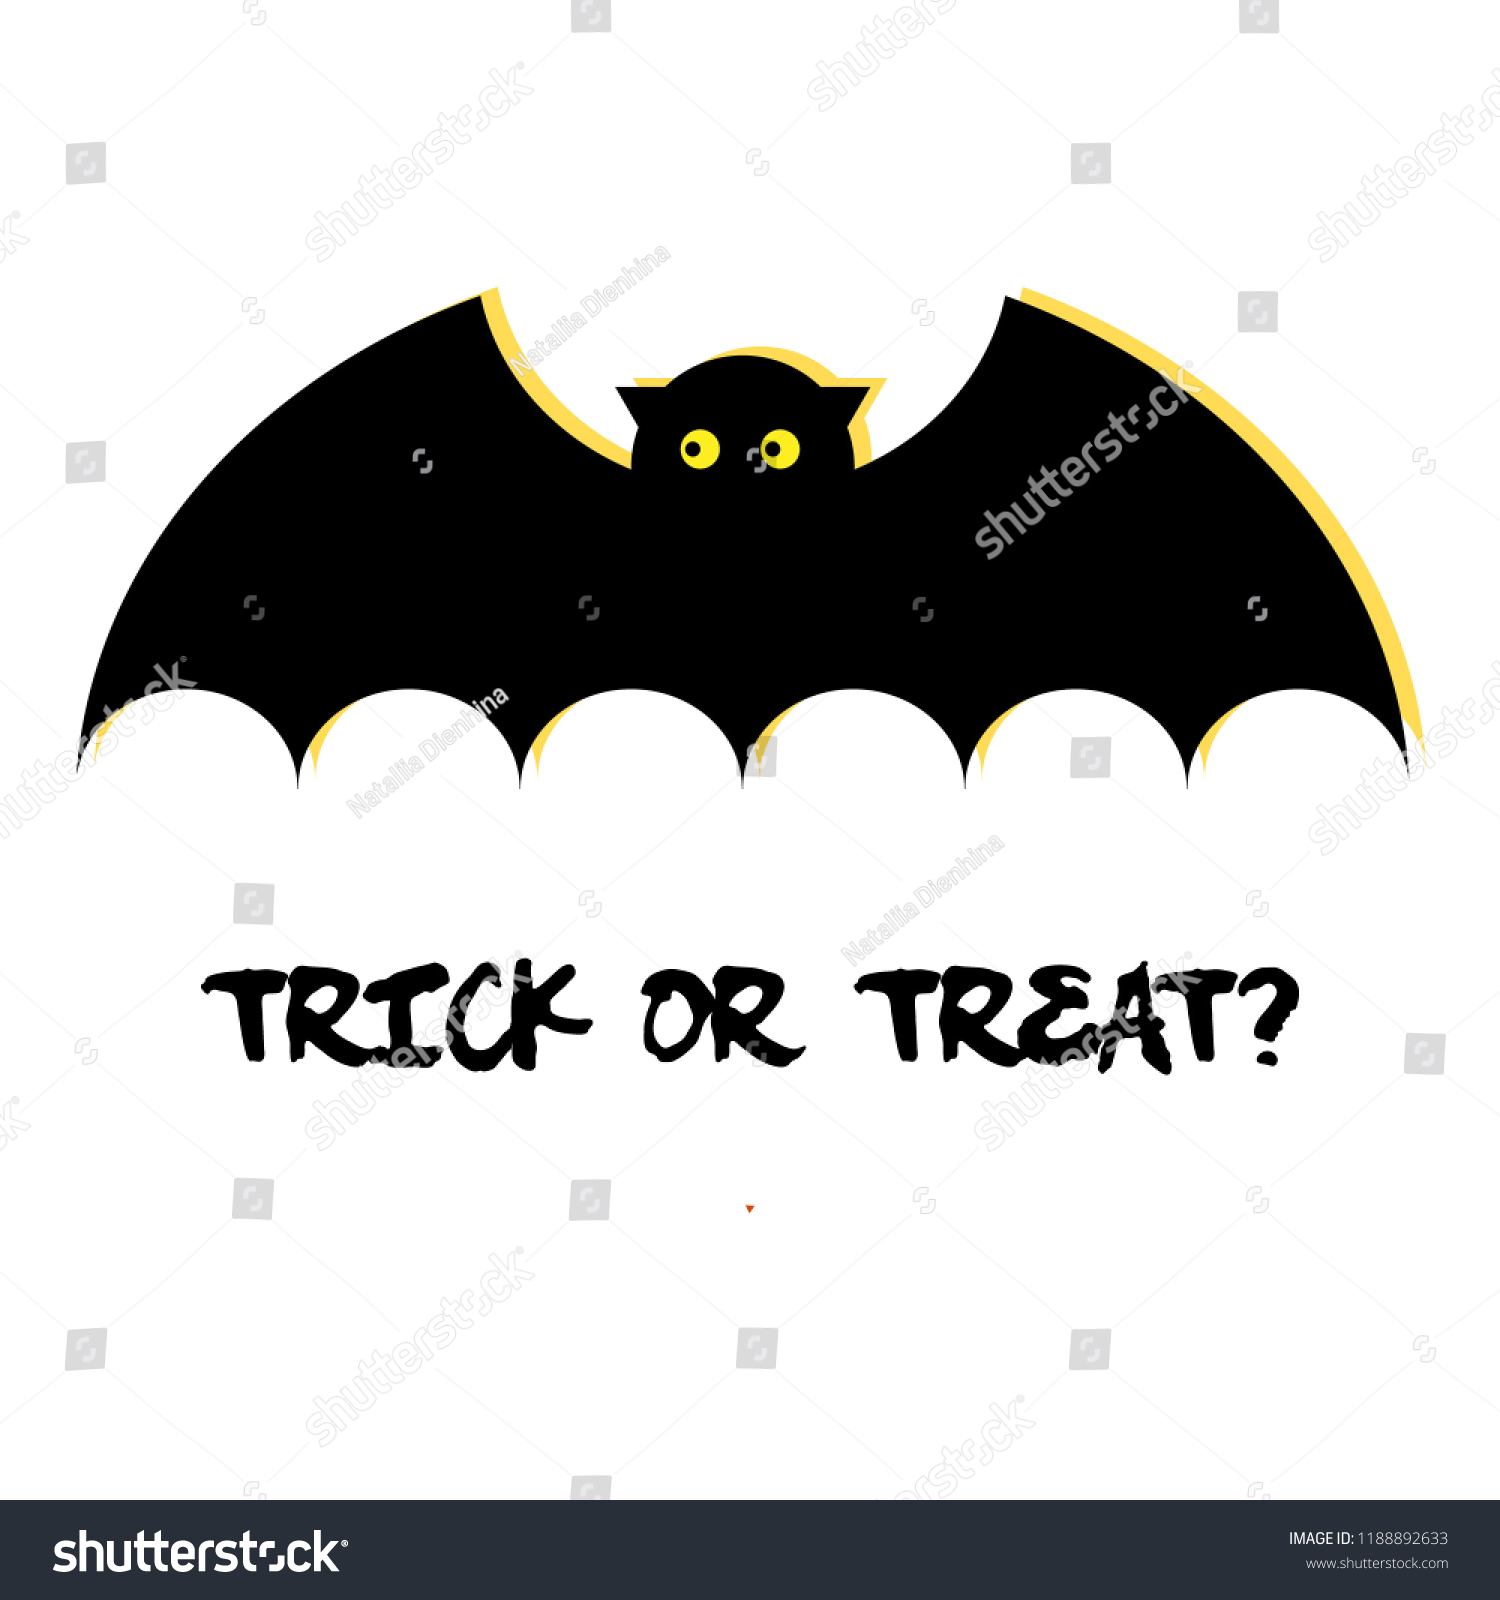 hight resolution of halloween clipart scary bat for celebration trick or treat cartoonish bat picture with text